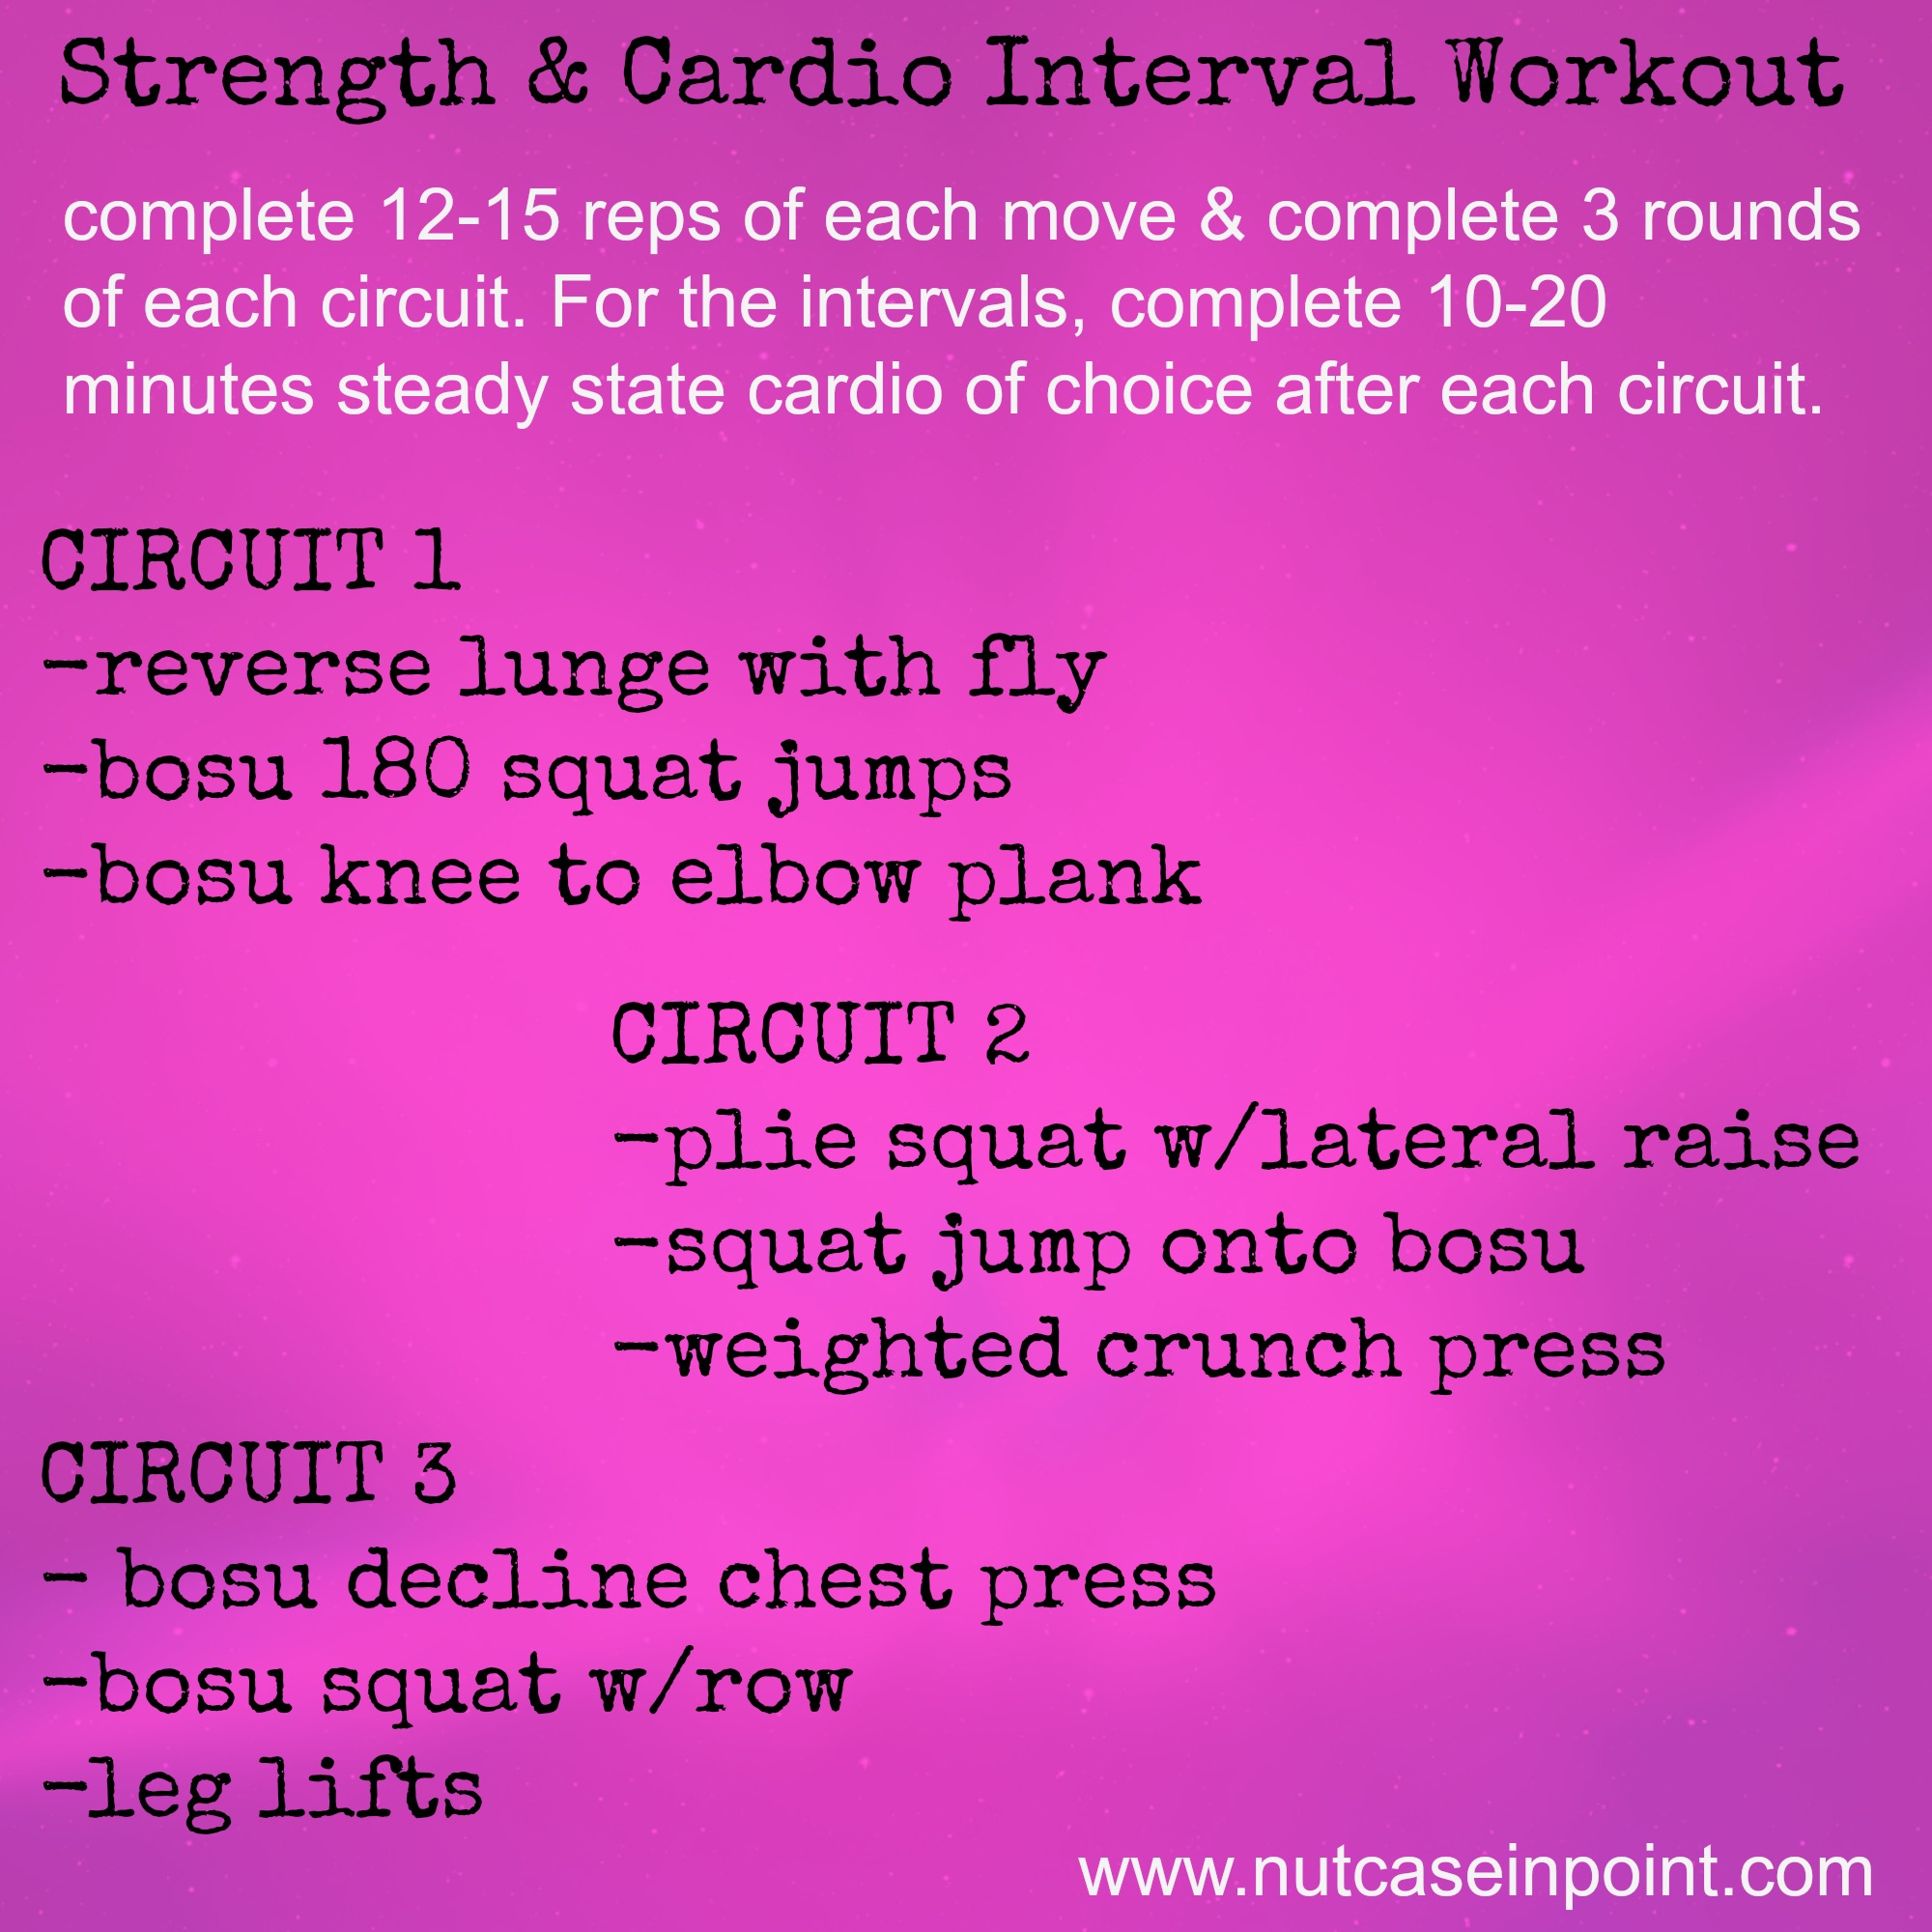 20 Minute At Home Cardio Workout Right So Two Posts In One Day Basically Nutcaseinpoint